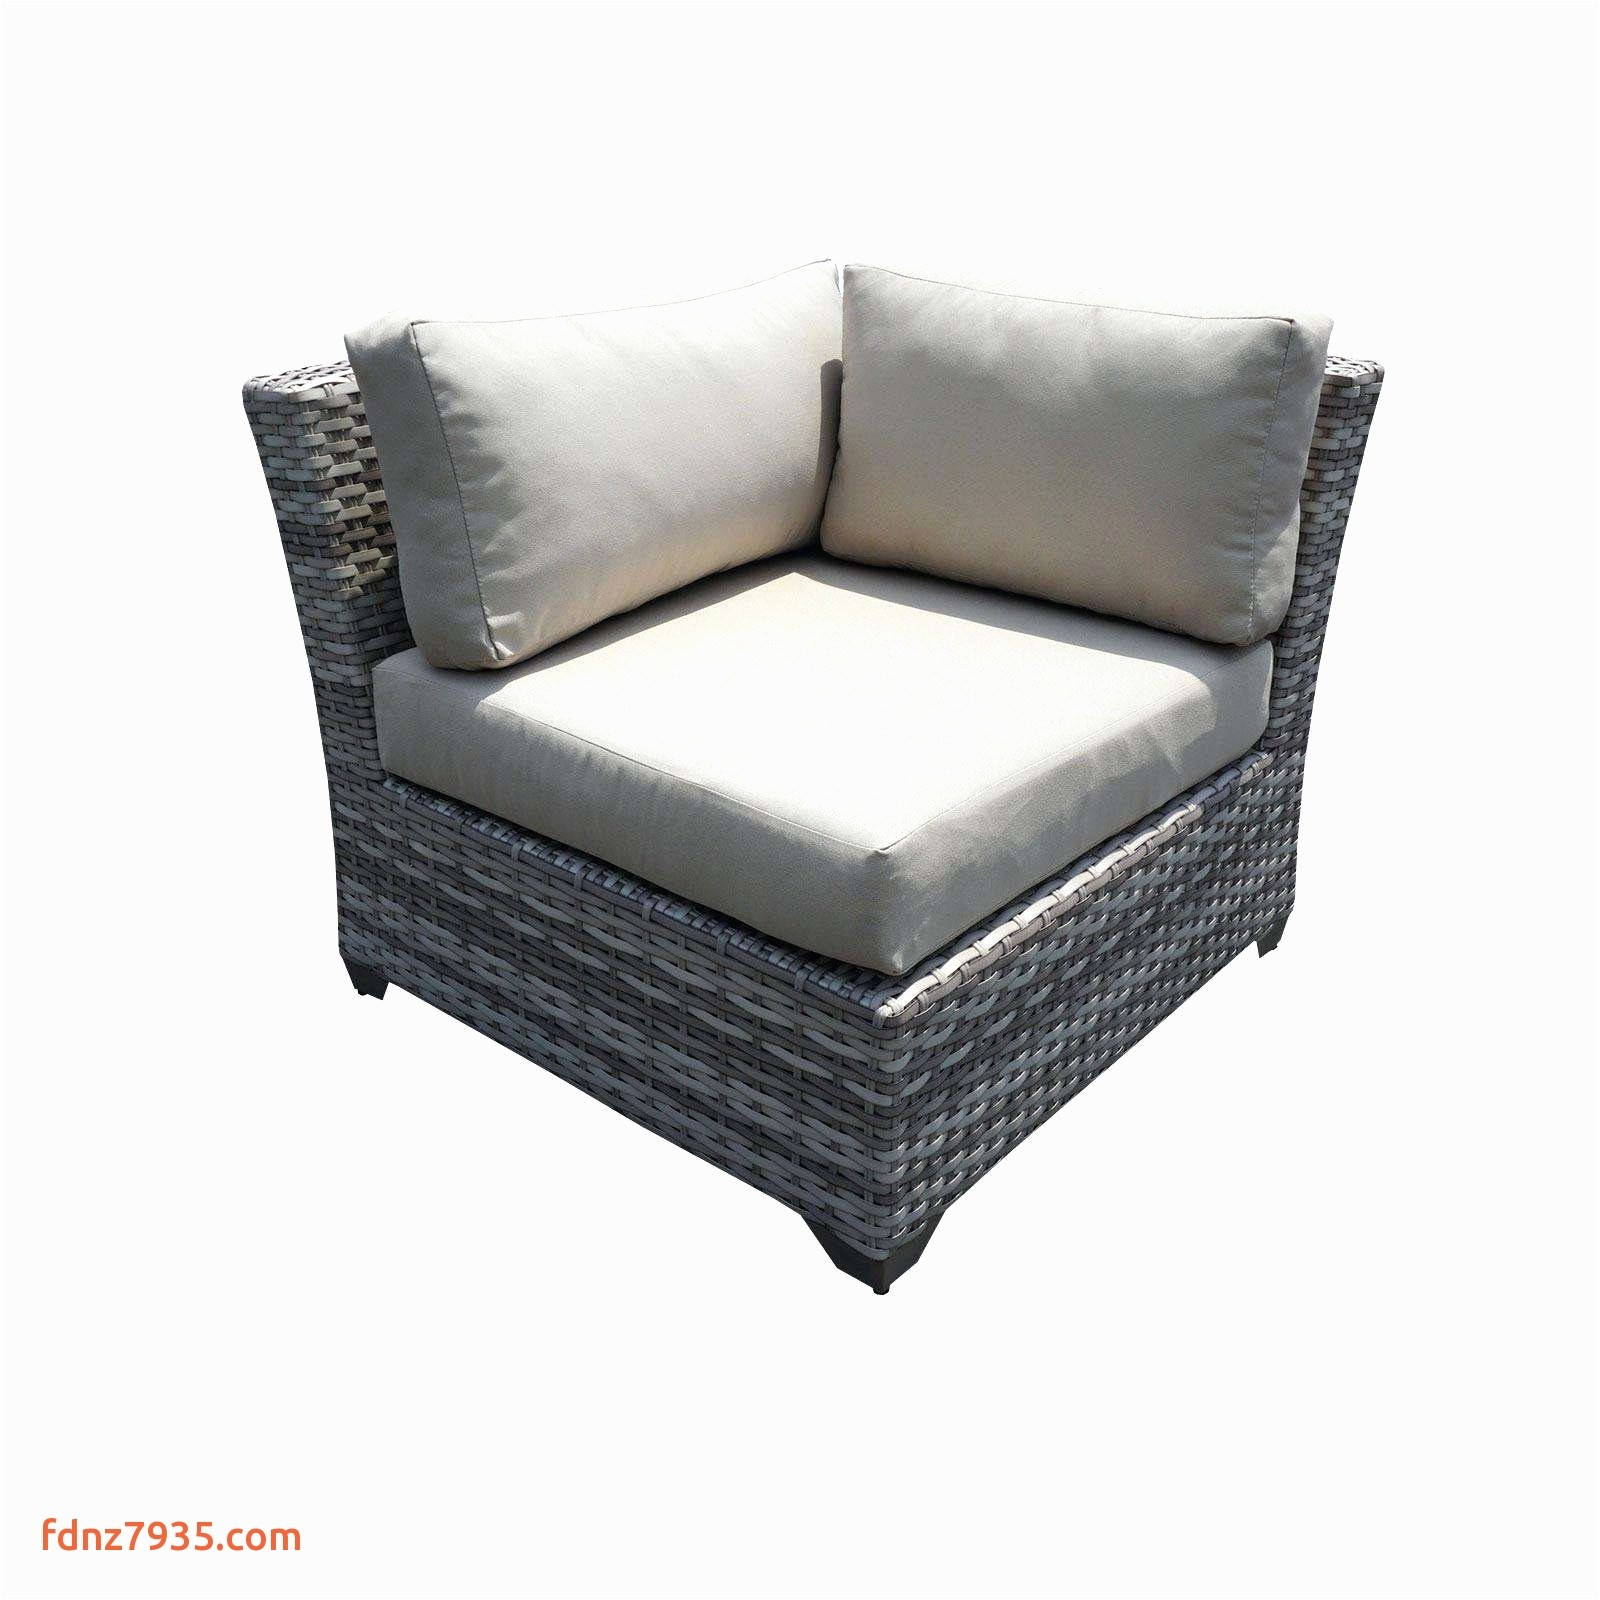 This End Up Furniture Replacement Cushions Replacement Cushions for Outdoor Furniture Fresh sofa Design